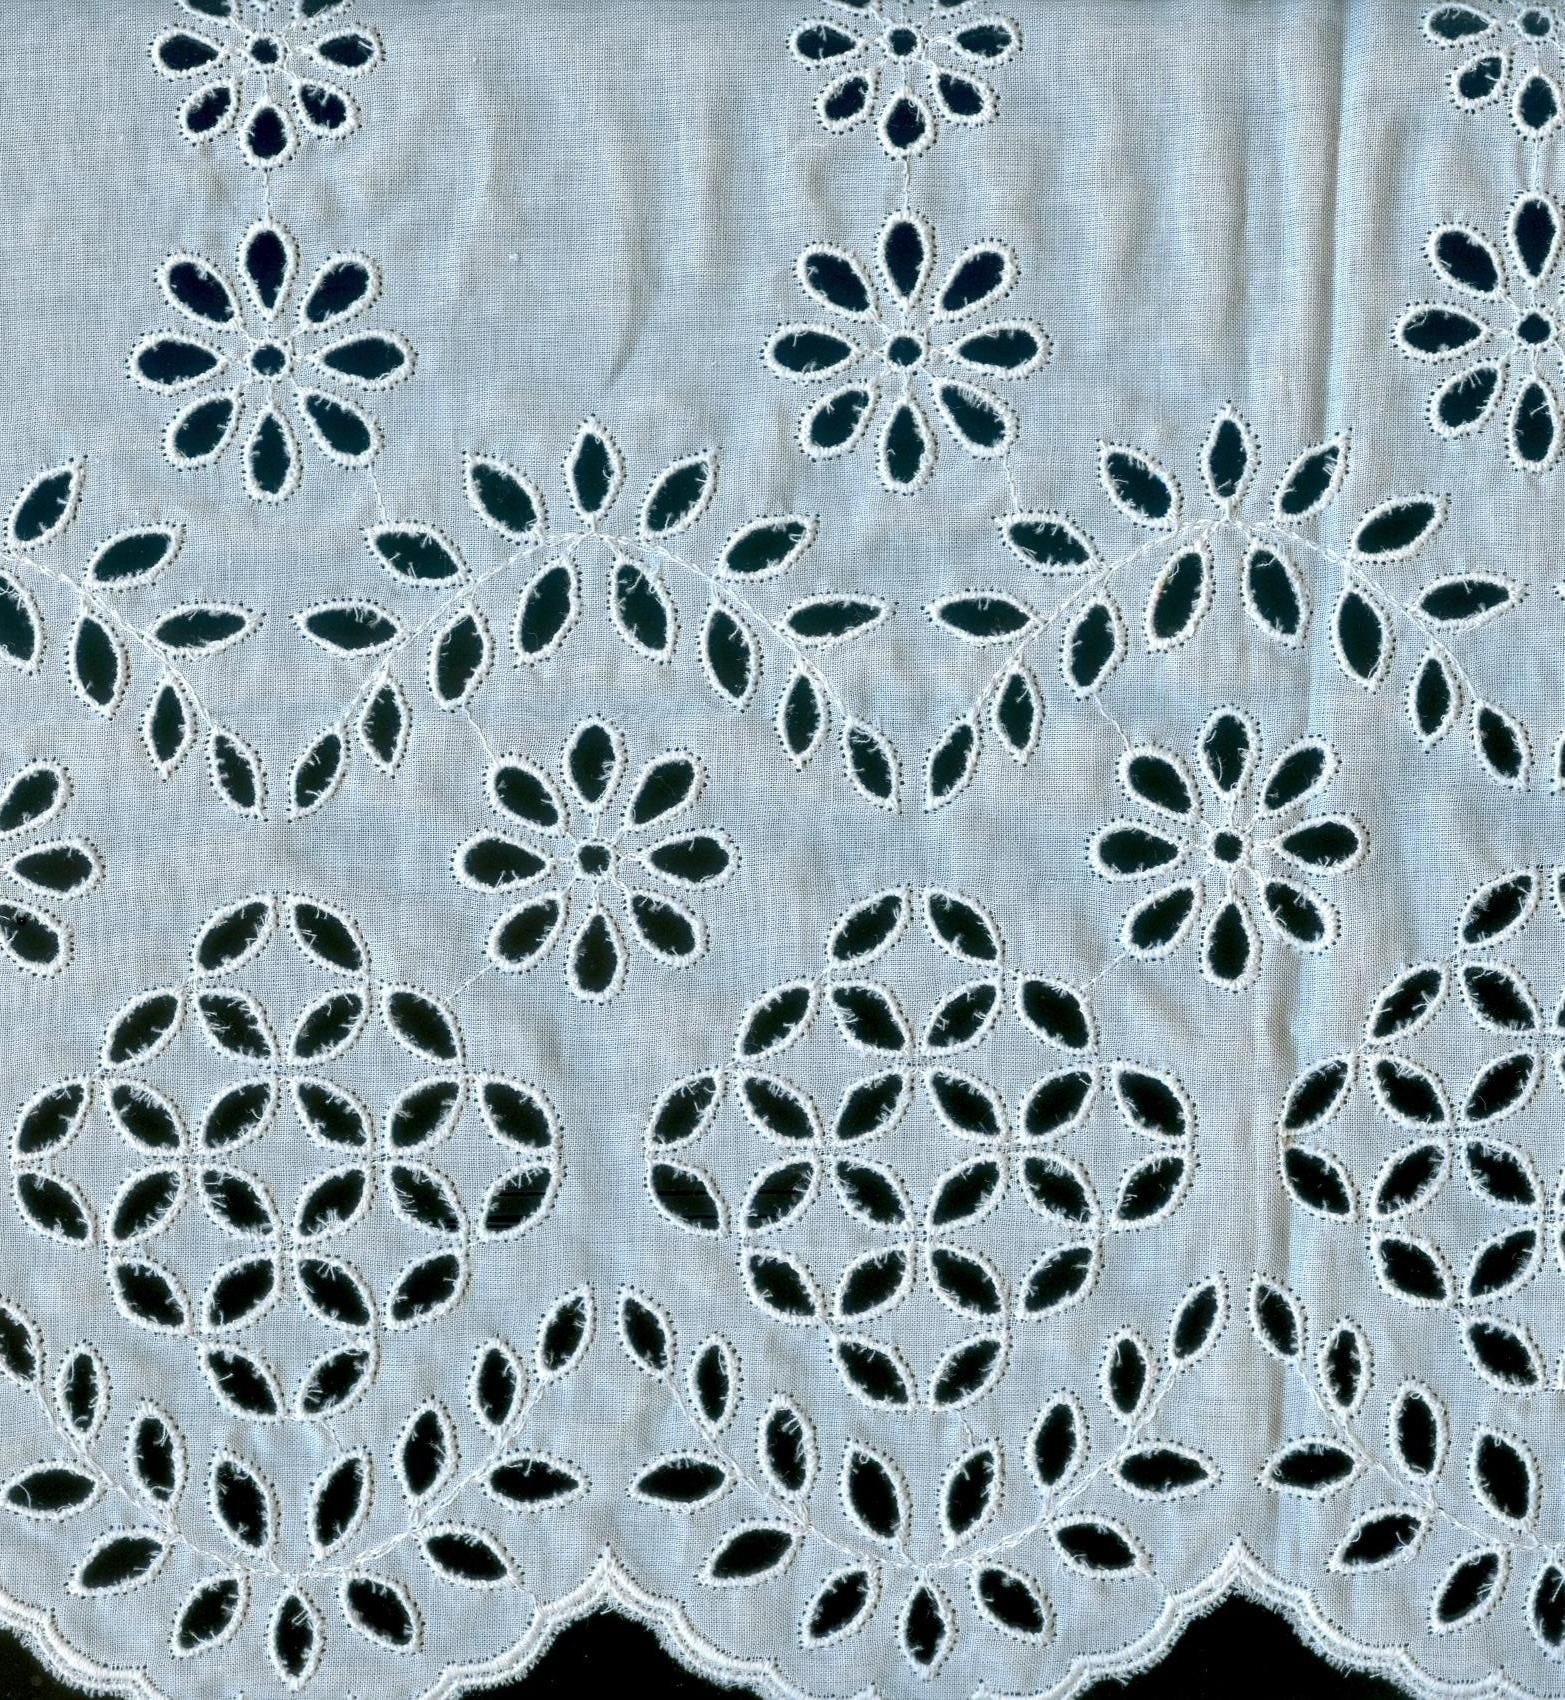 COTTON LACE Google Search PATTERNS TEXTURE AND LACE